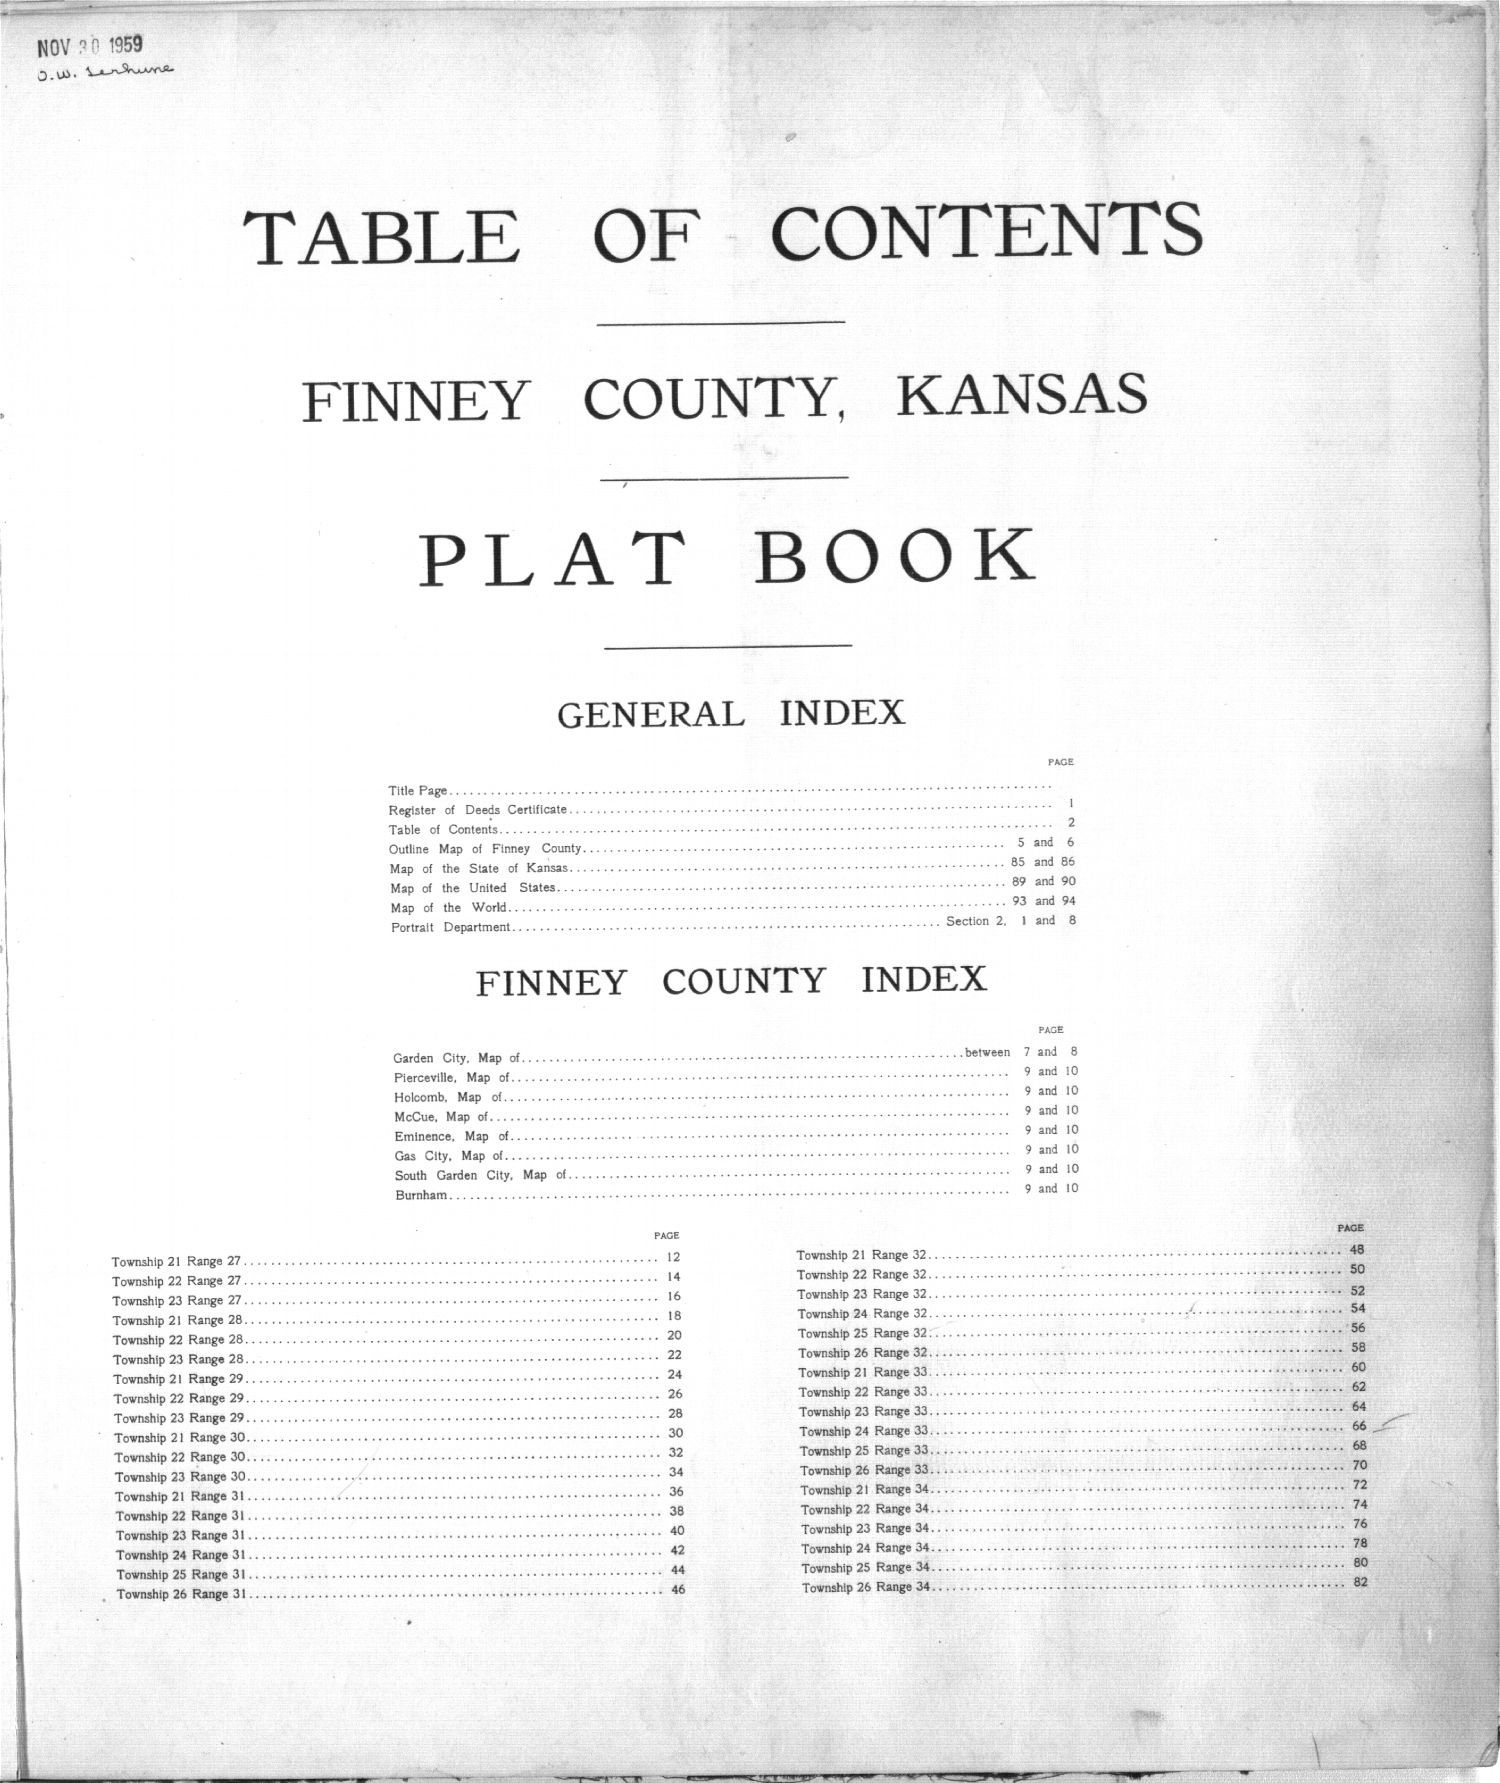 Plat book of Finney County, Kansas - 2